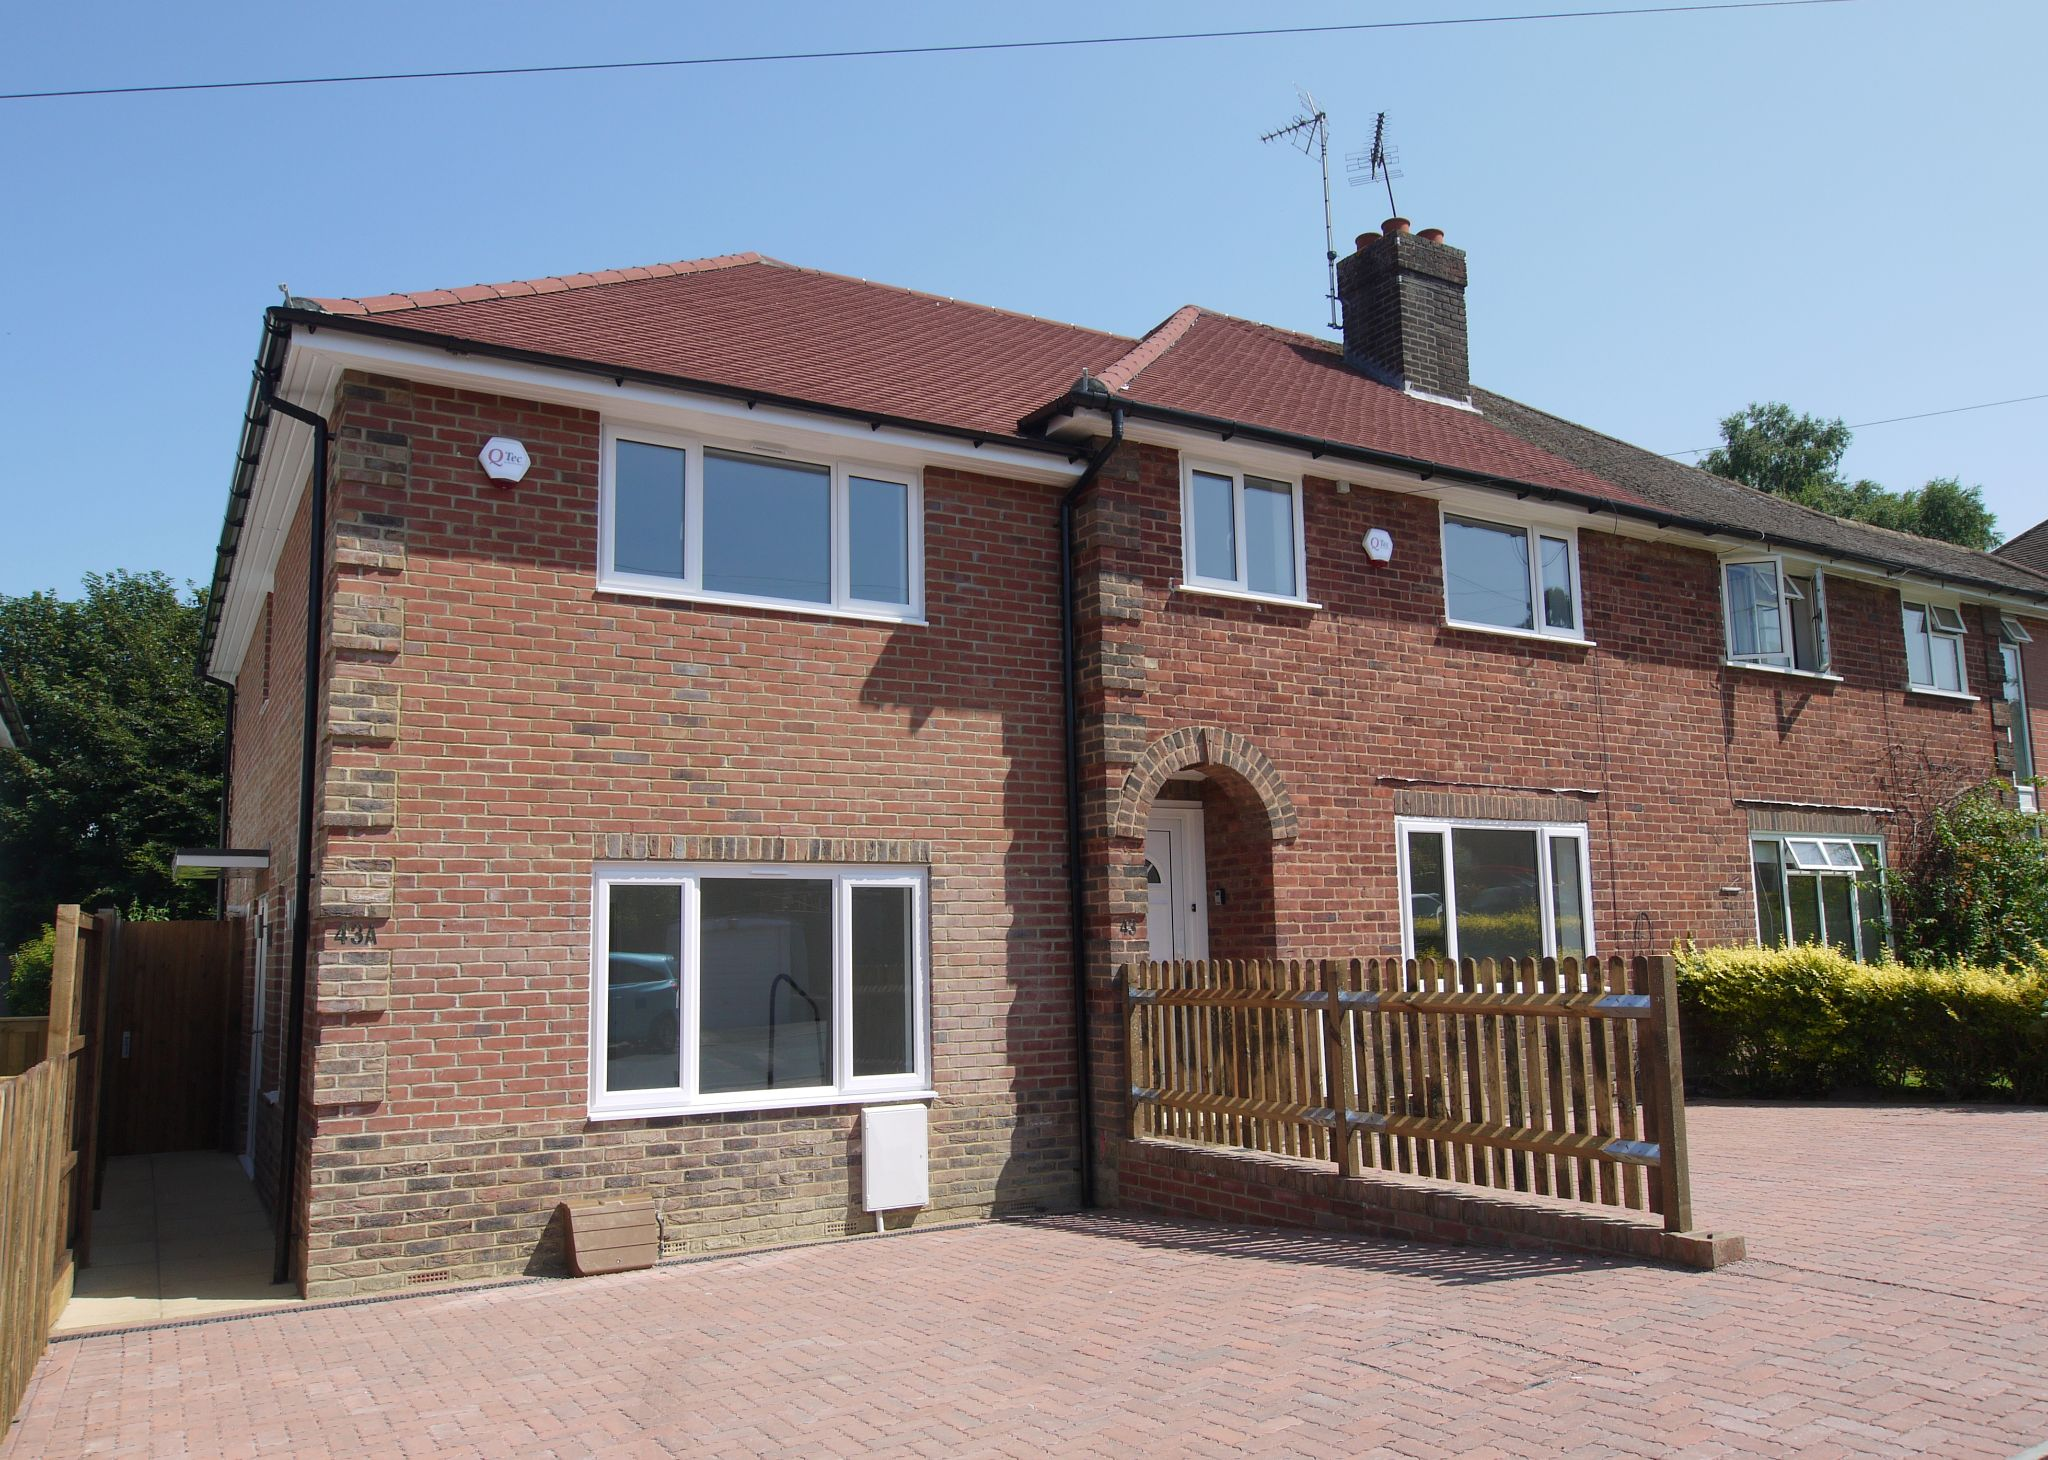 2 bedroom end terraced house Sold in Sevenoaks - Photograph 1